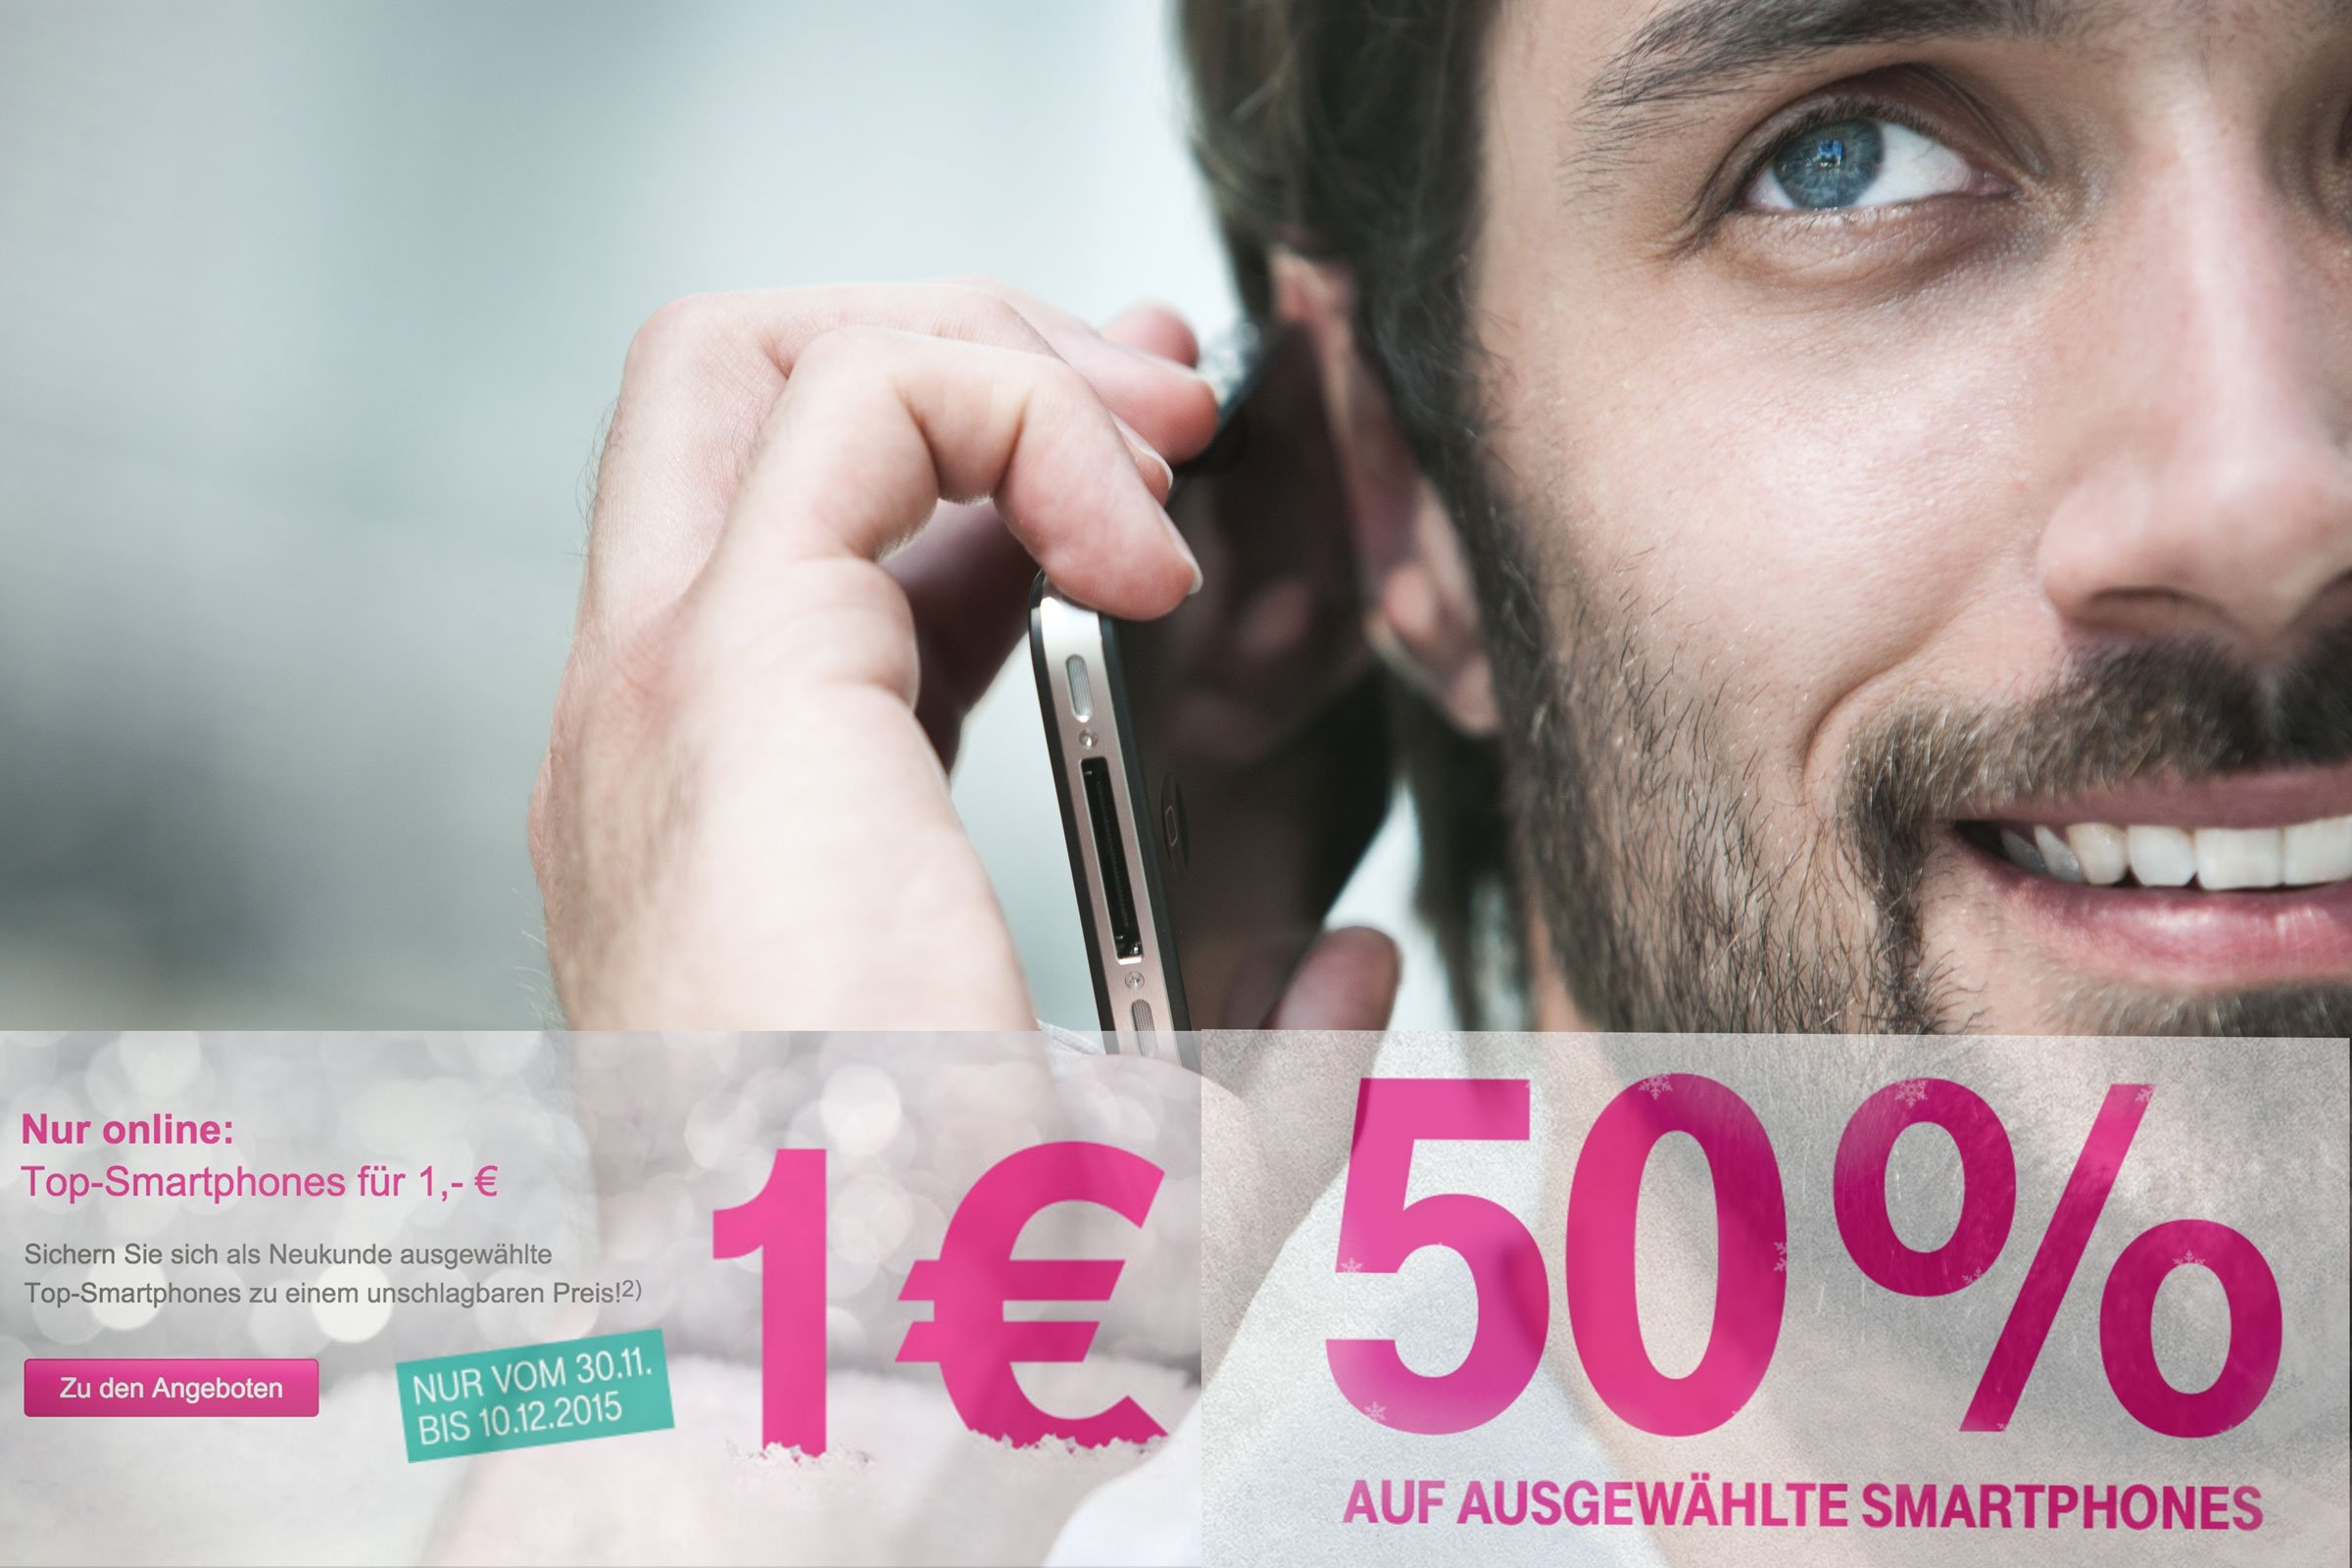 Telekom: iPhone 6 heute 50% billiger, iPhone 5s in 1€ Aktion! 8